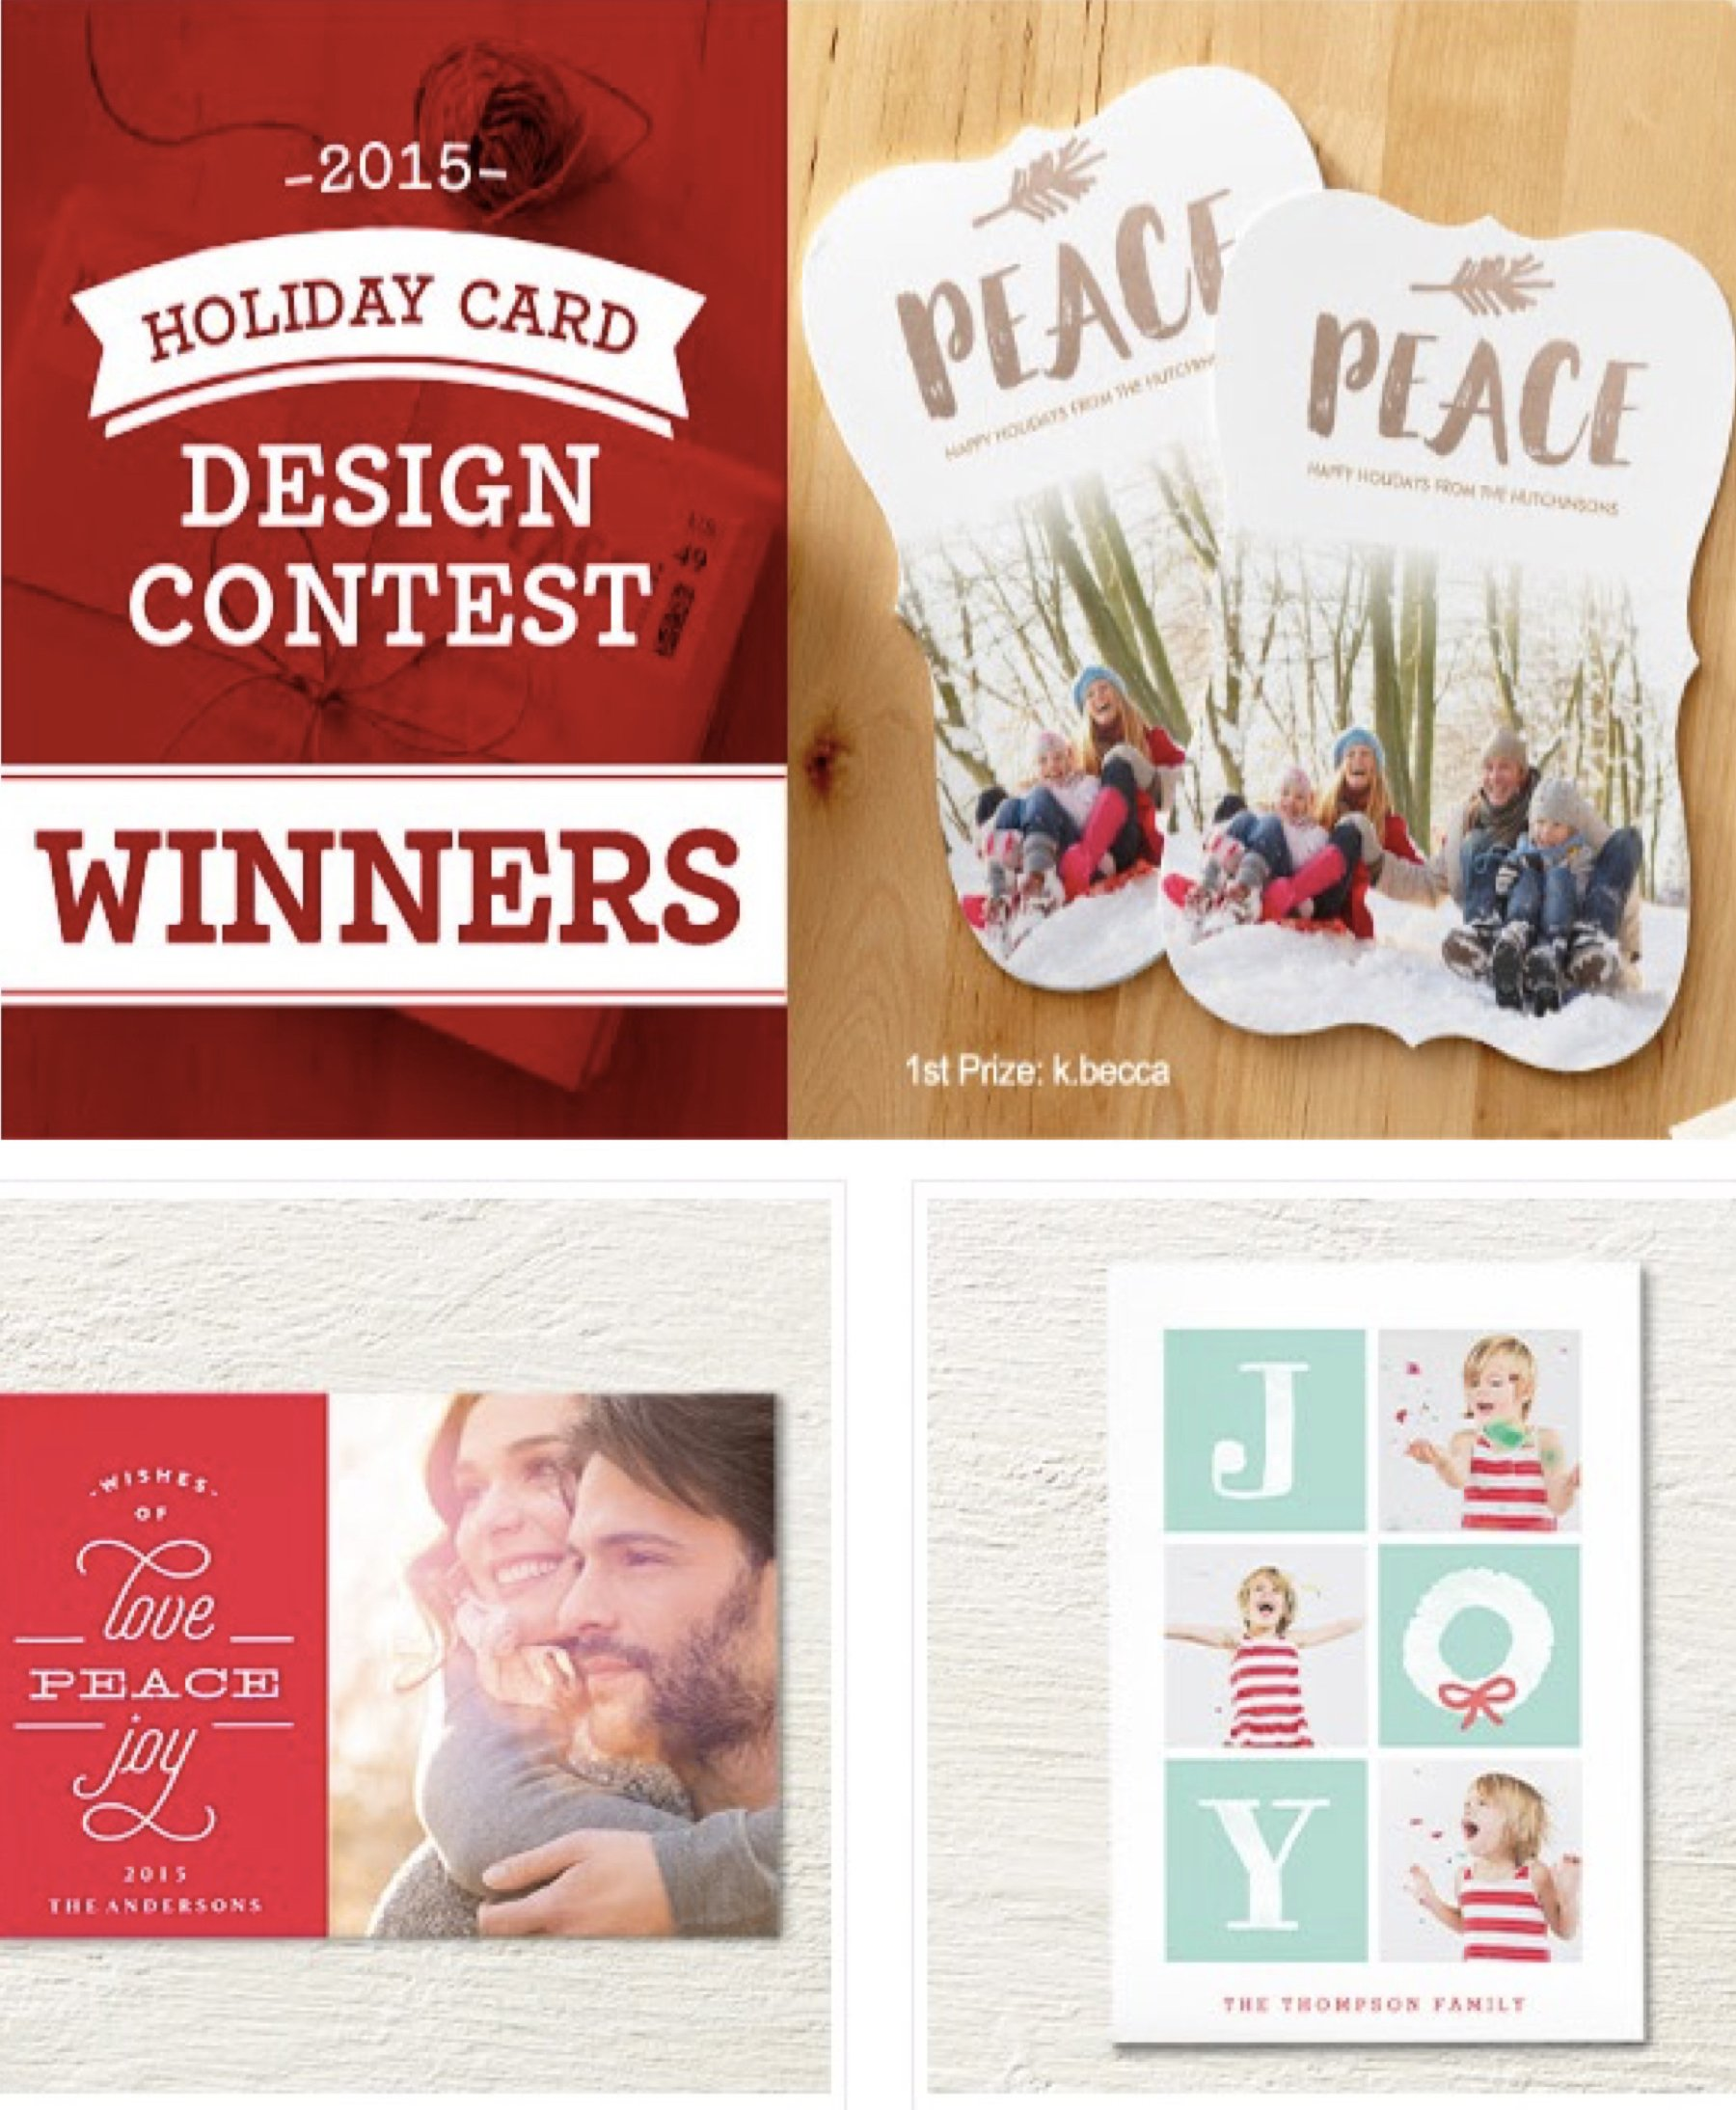 Dazzle Holiday Card Winners